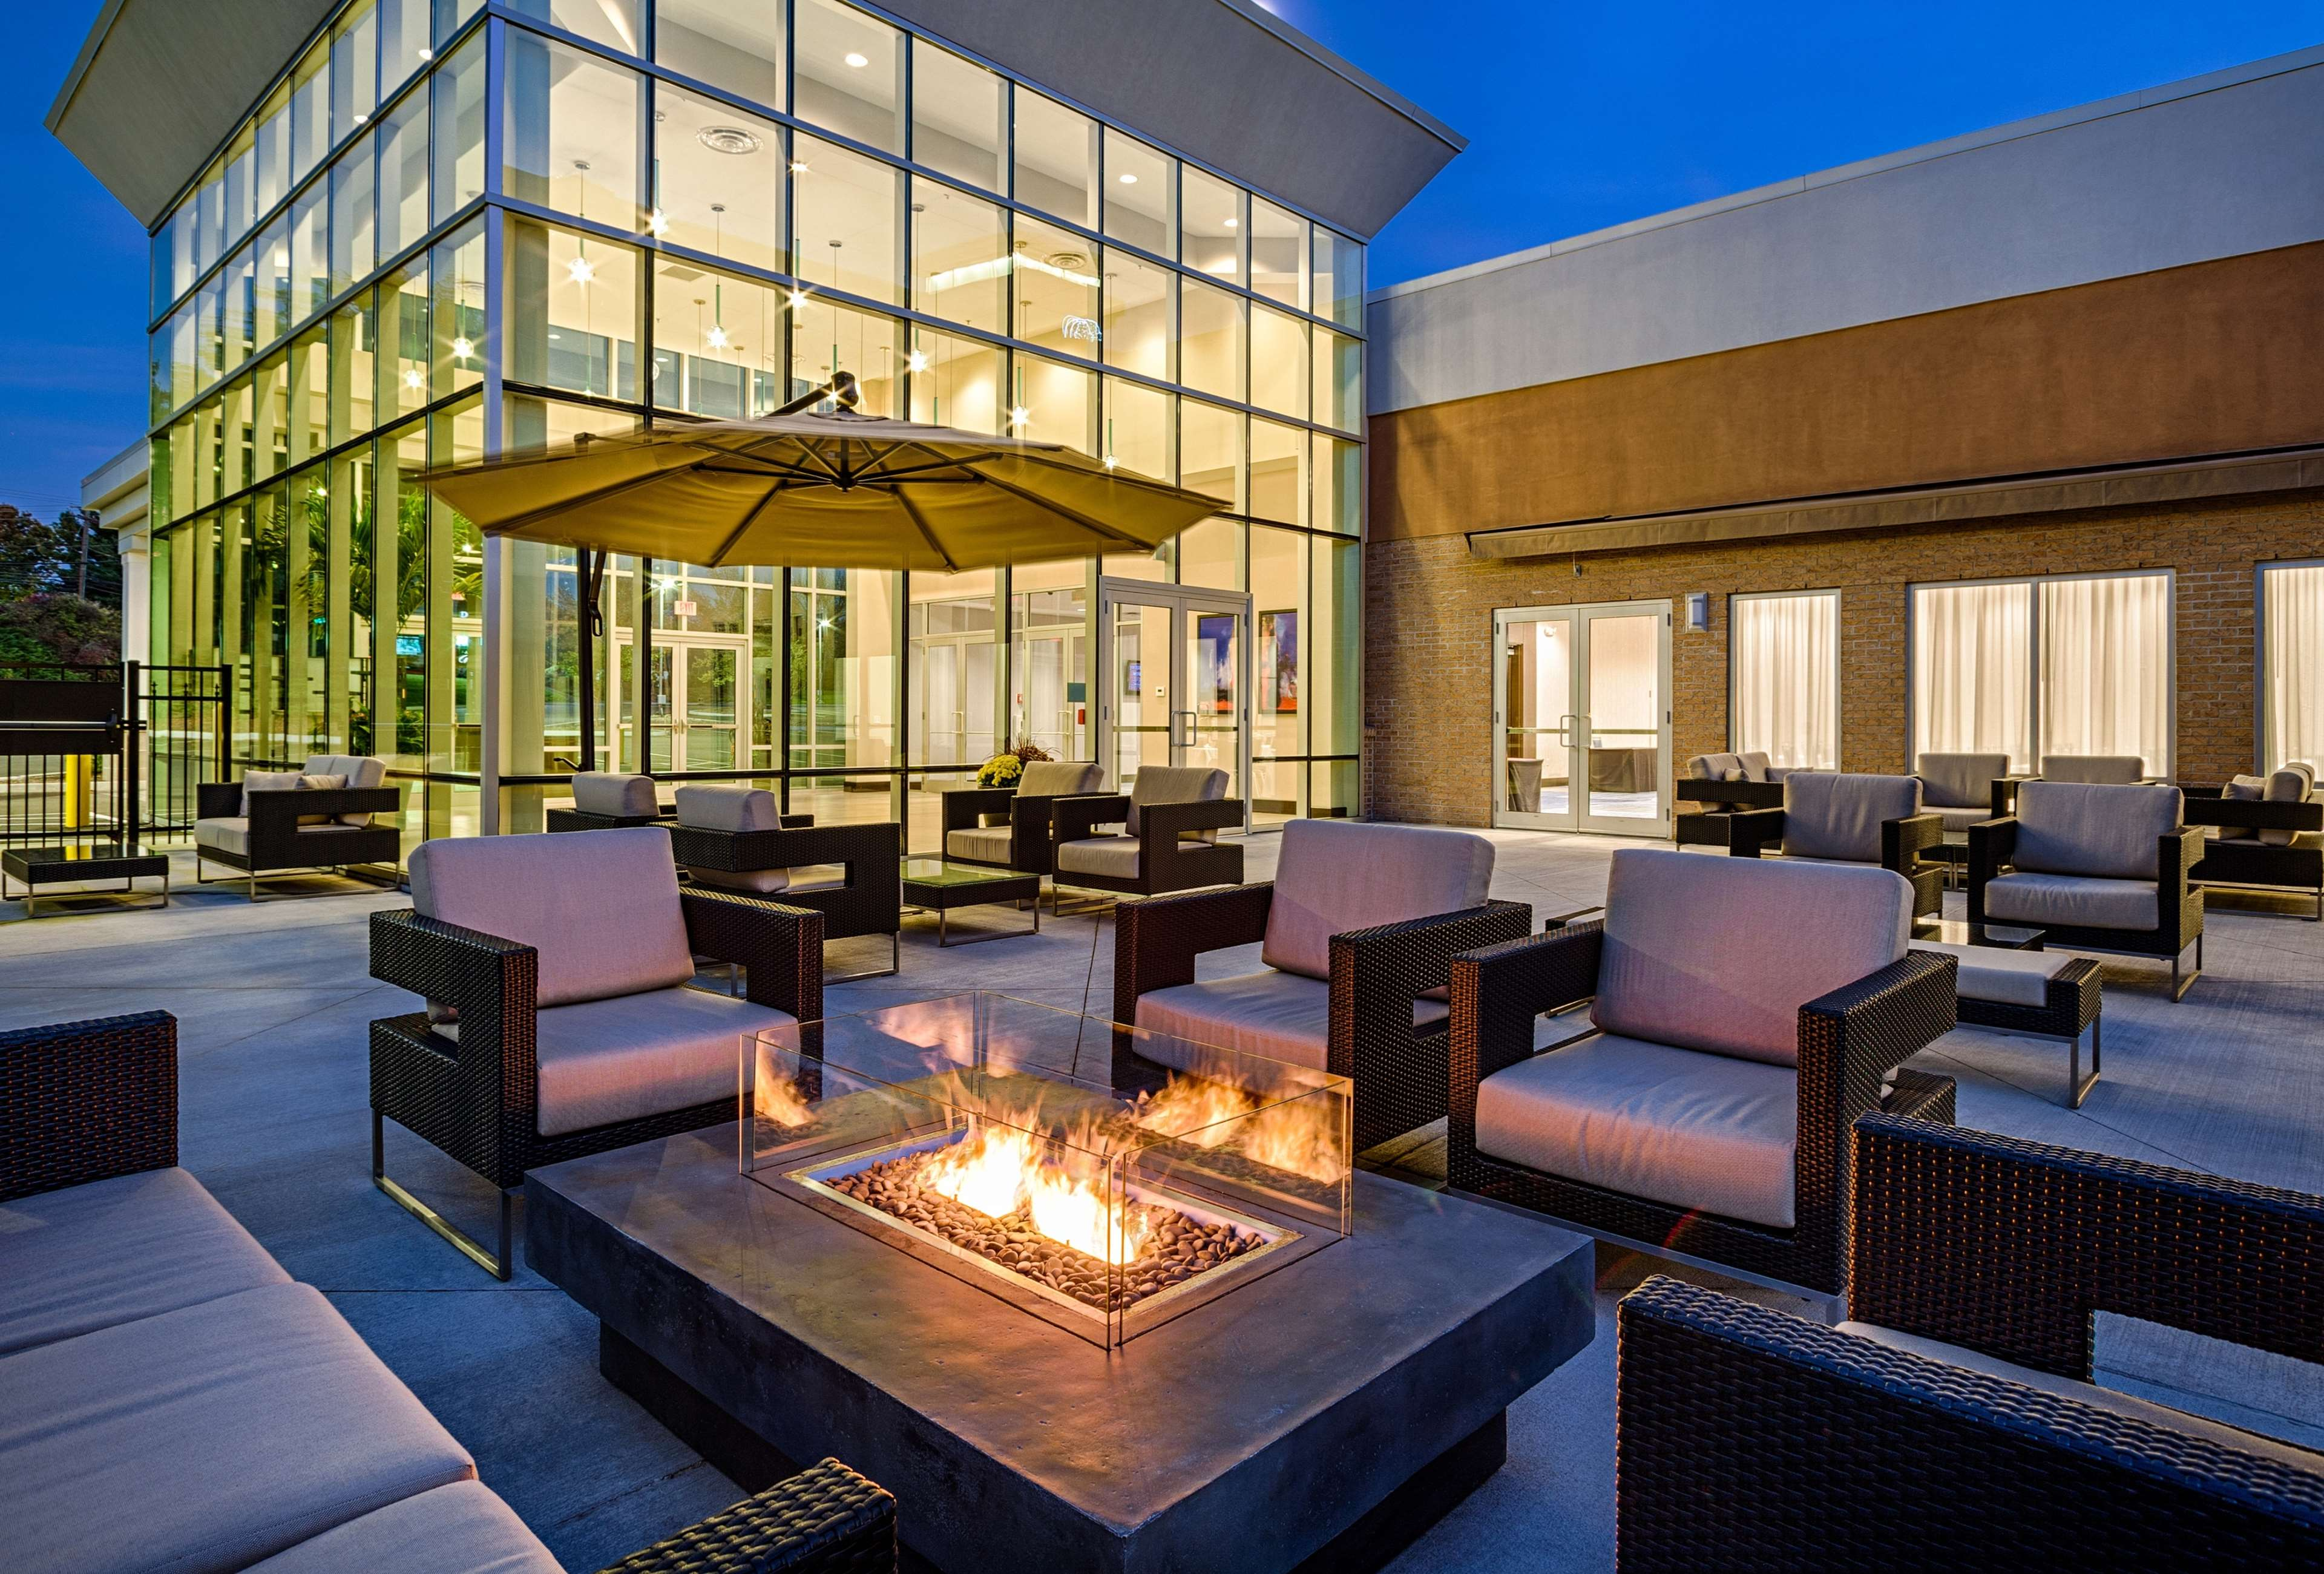 DoubleTree by Hilton Hotel Bristol, Connecticut image 0